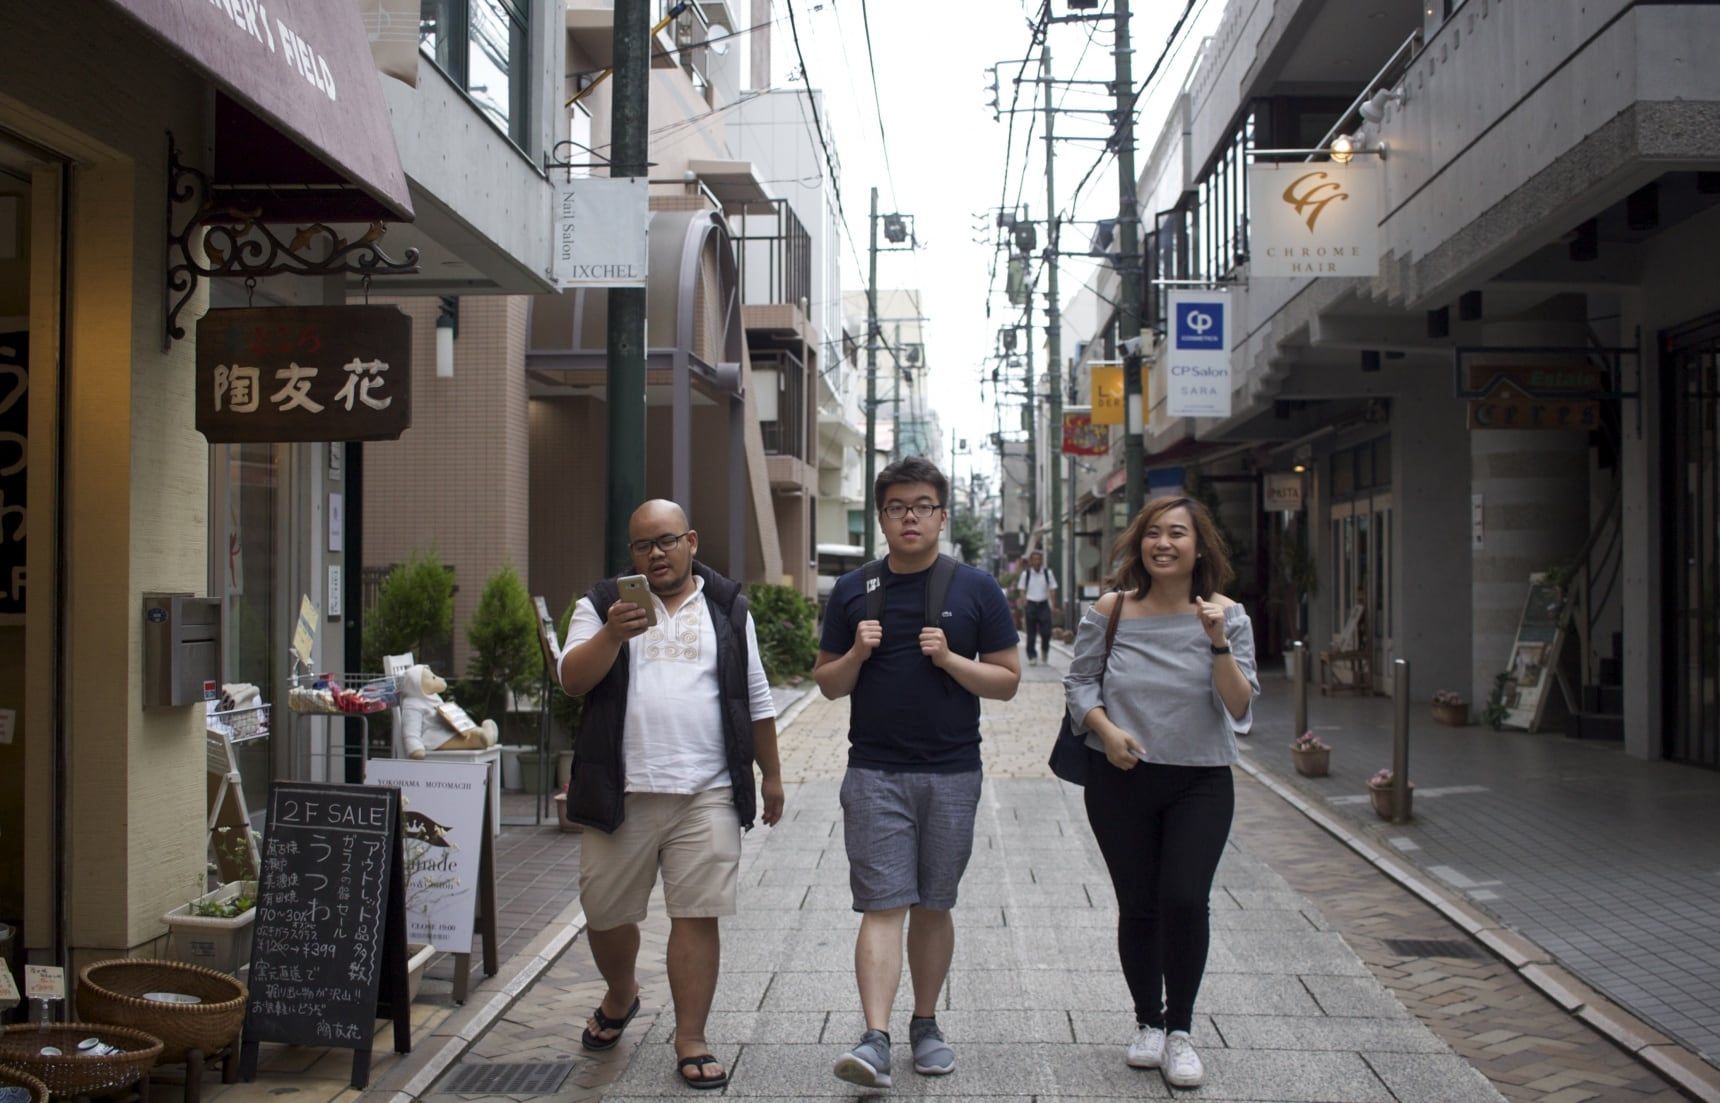 Finding Bargains in Kanto's Posh Neighborhoods